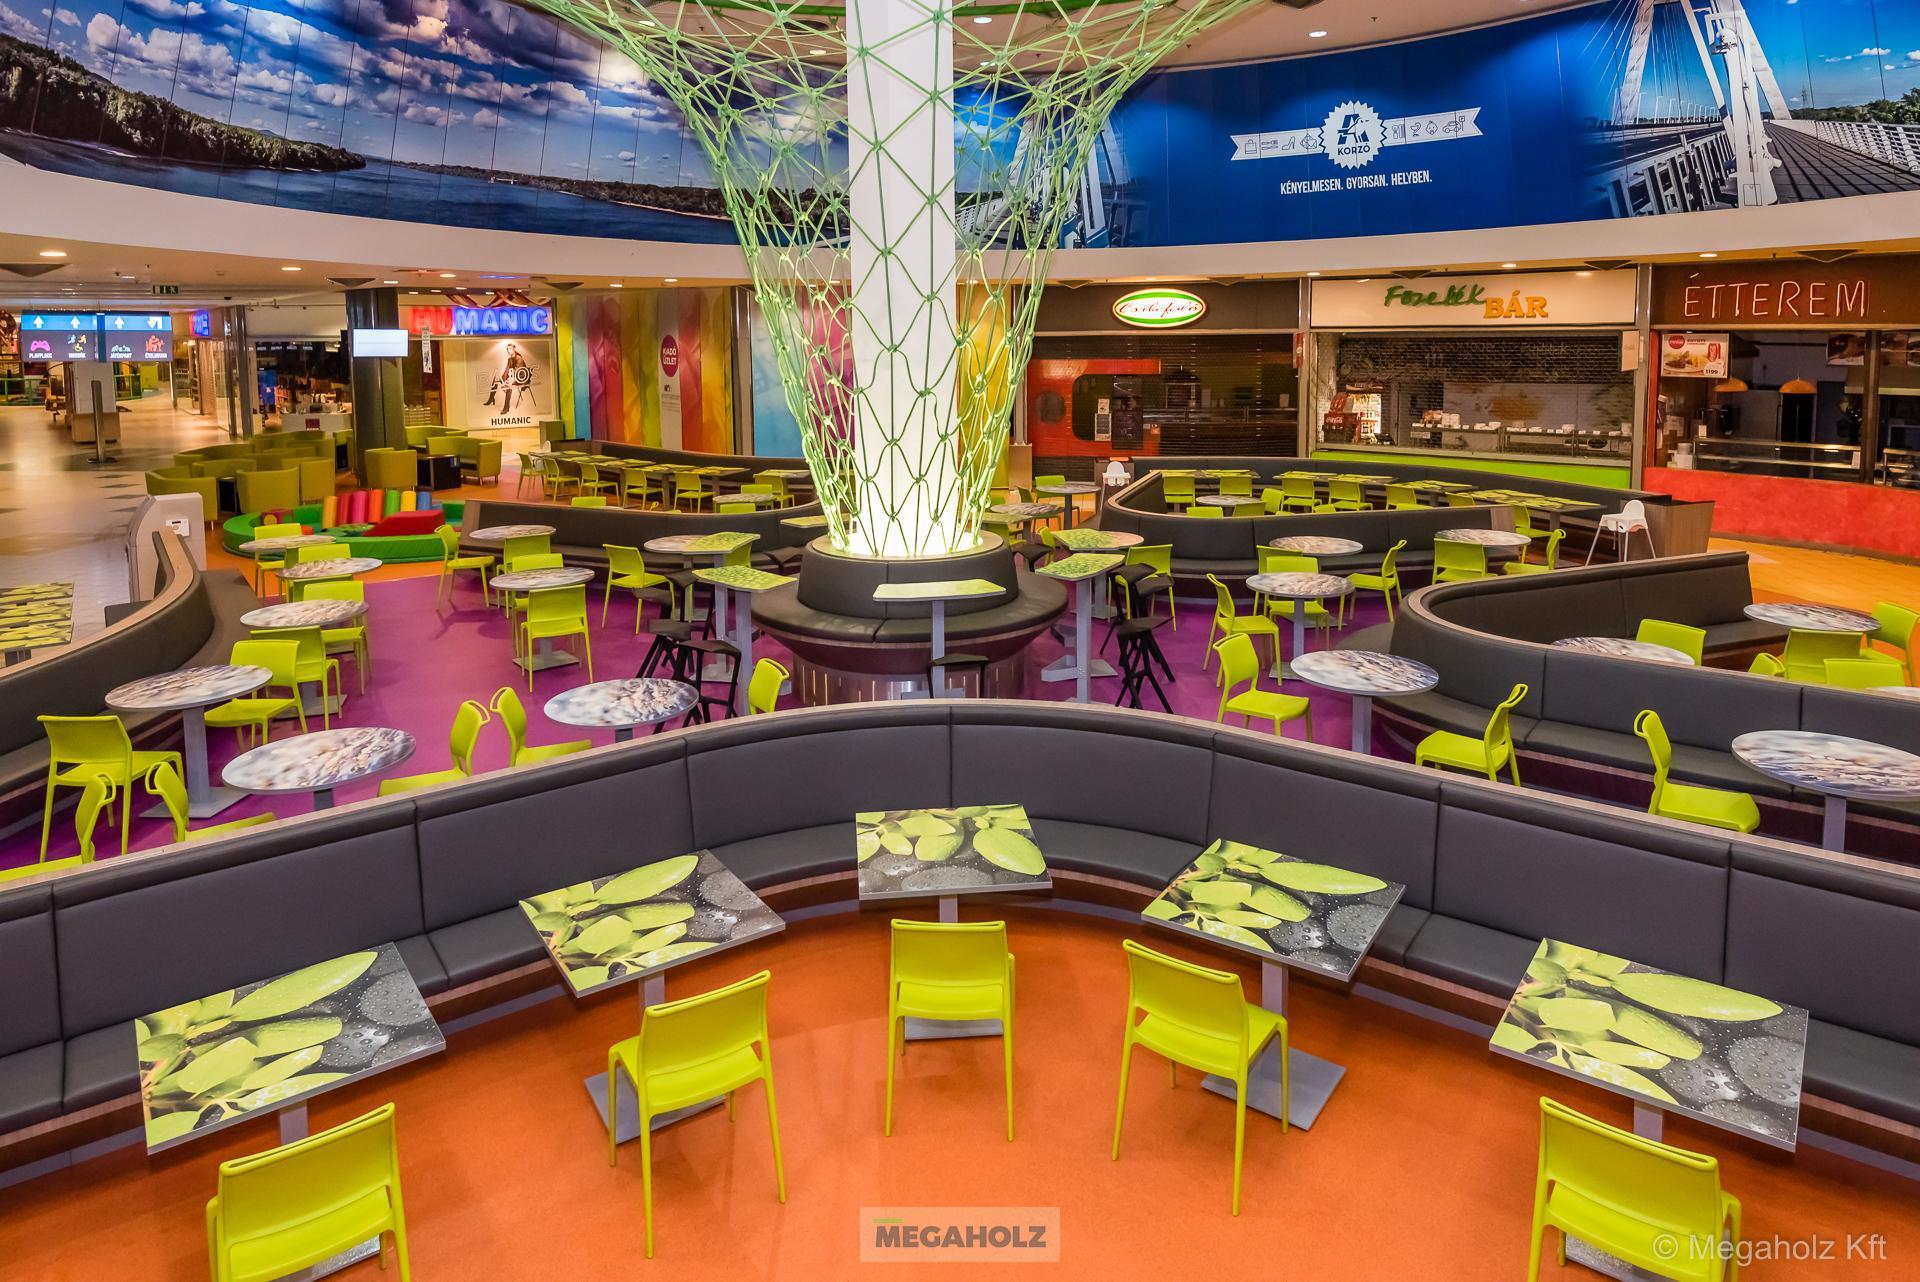 Food court, shopfitting, Budapest, shopping center